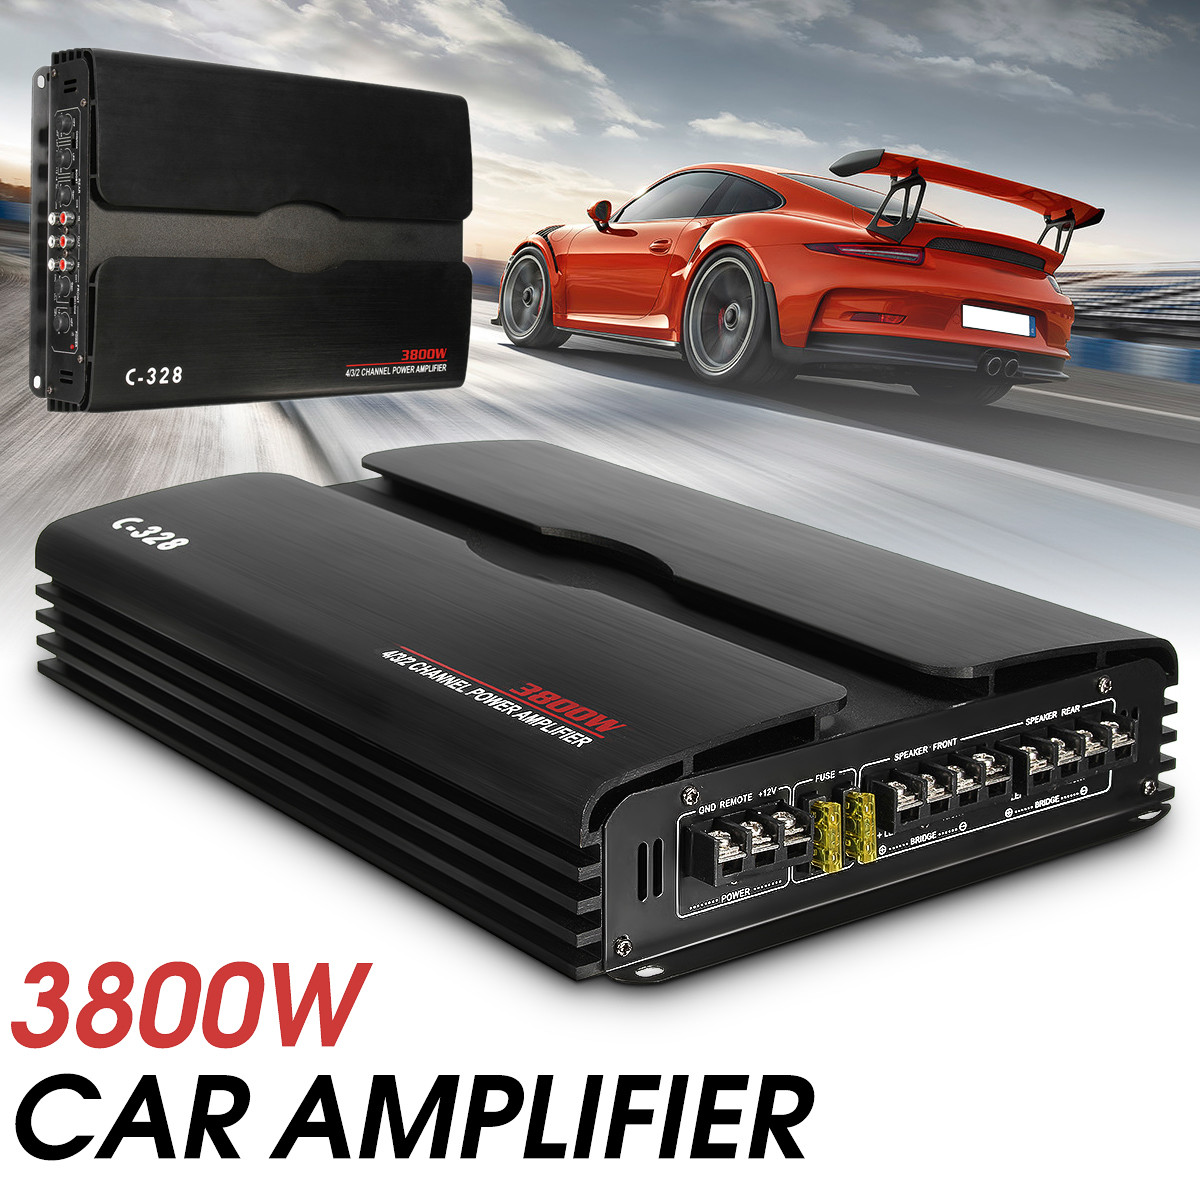 3800W Multichannel Aluminum Alloy Car Amplifier Speaker Powerful Car Audio Power Amplifier Subwoofer Car Truck Stereo Amplifier stylish women s tote bag with clip closure and crocodile print design